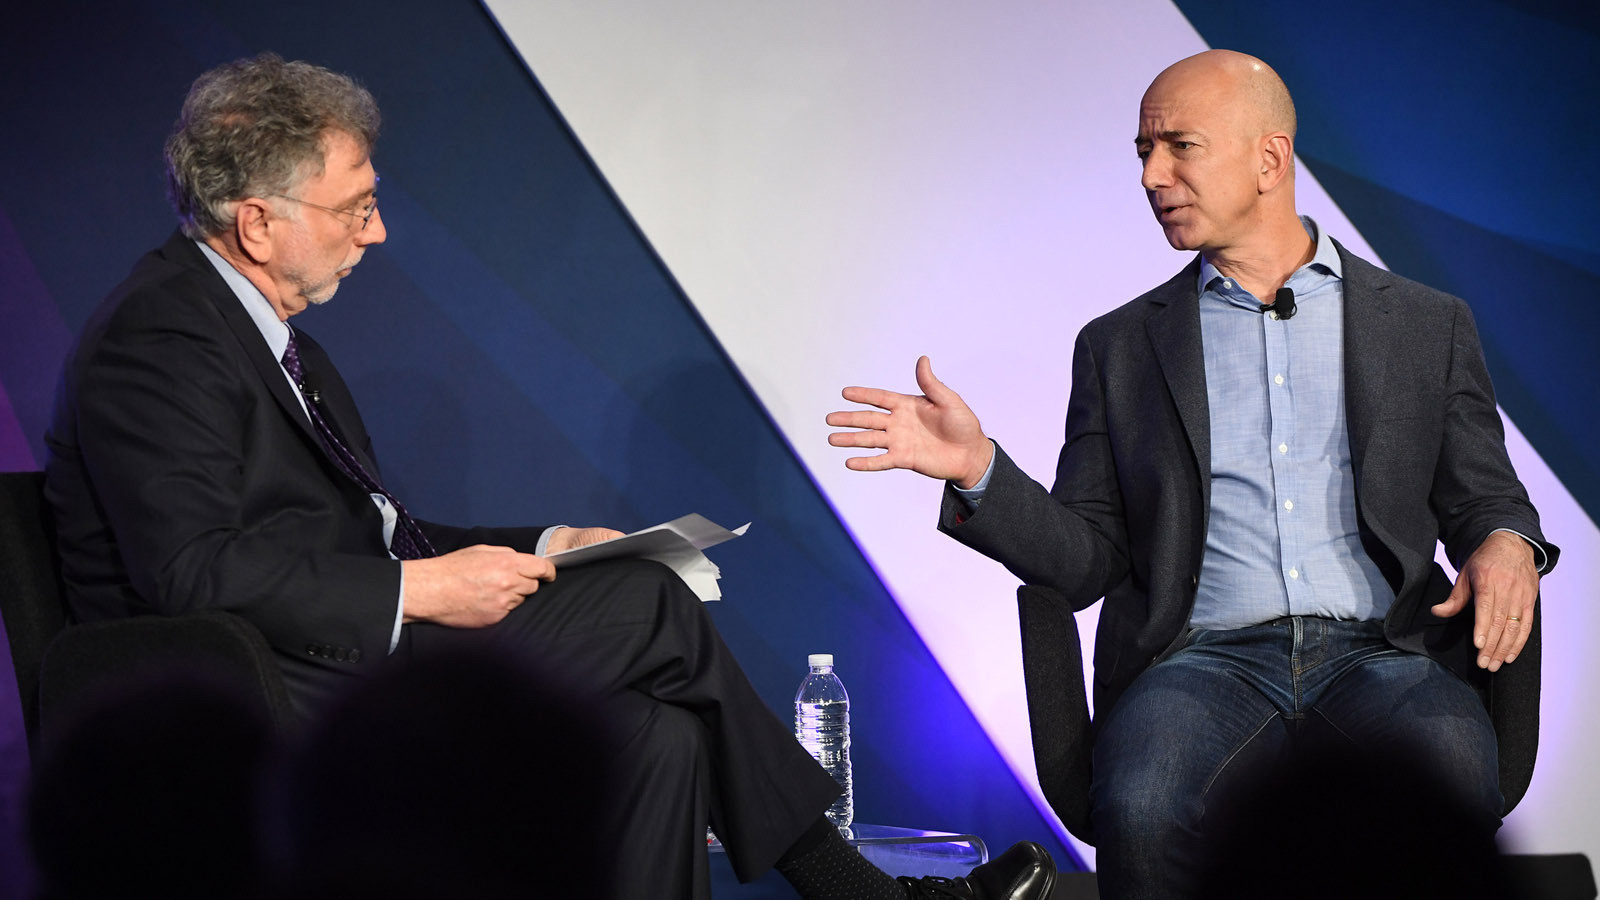 Amazon Ceo Jeffrey Bezos Privacy Security Debate Is Issue Of Our